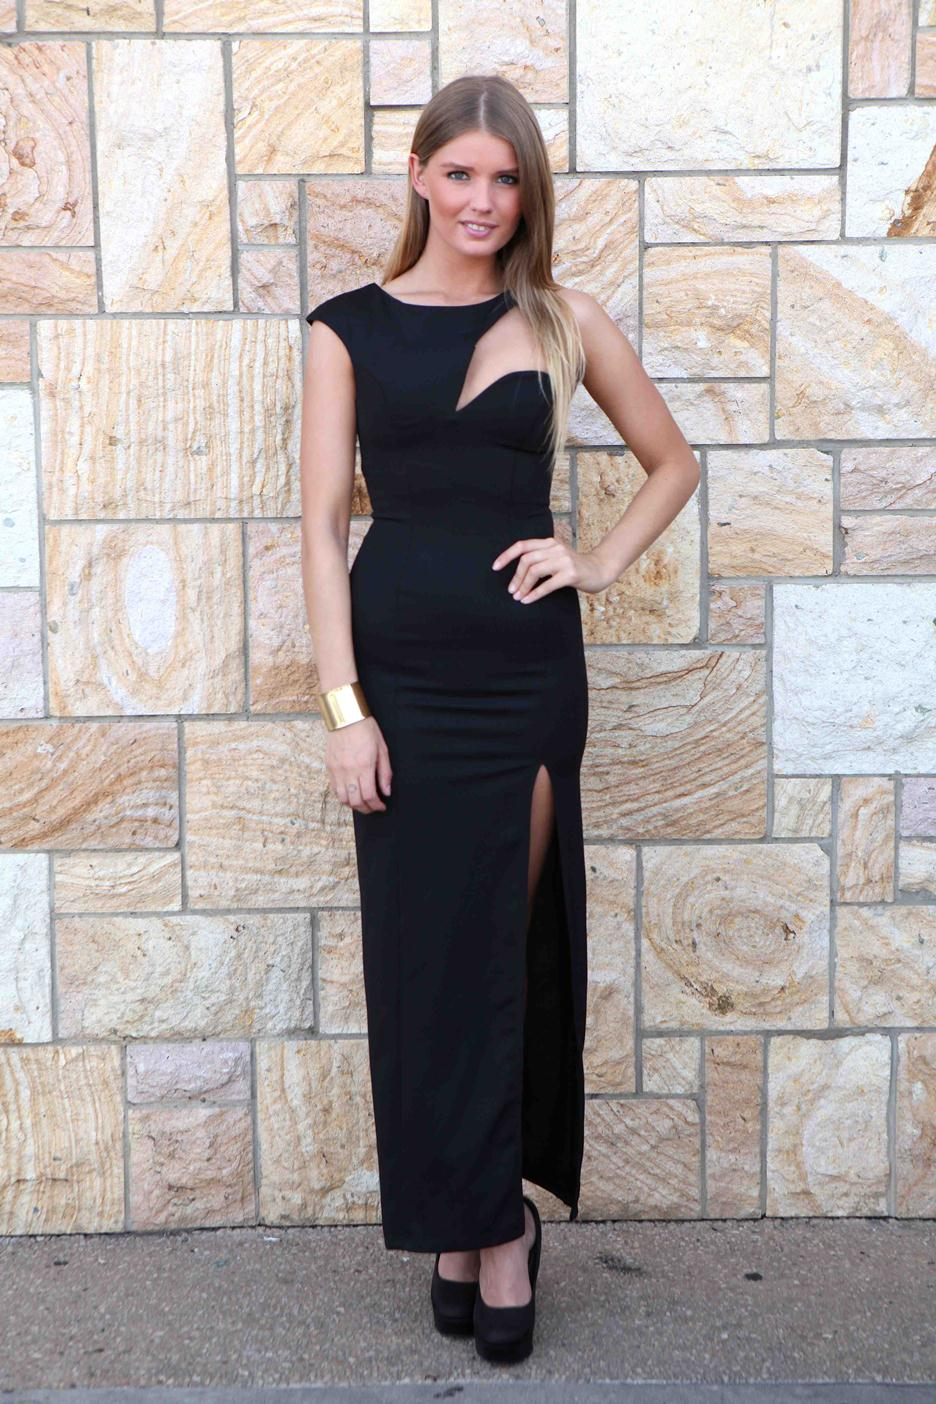 Black Longer Lengths Dress - Black Cutaway Bodice Maxi Dress | UsTrendy